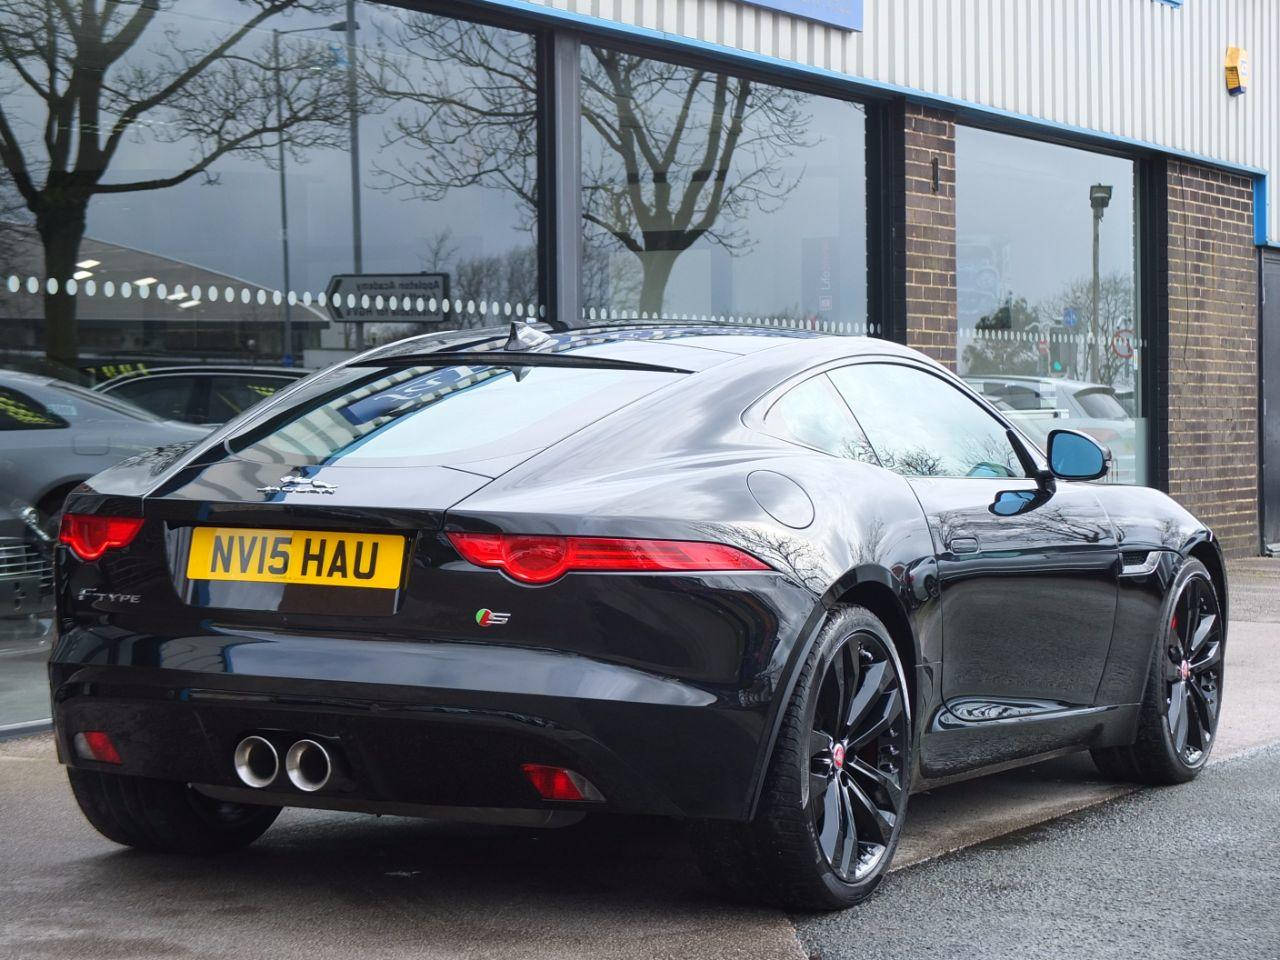 Jaguar F-type 3.0 Supercharged V6 S 380ps Auto Coupe Petrol Ultimate Black Metallic